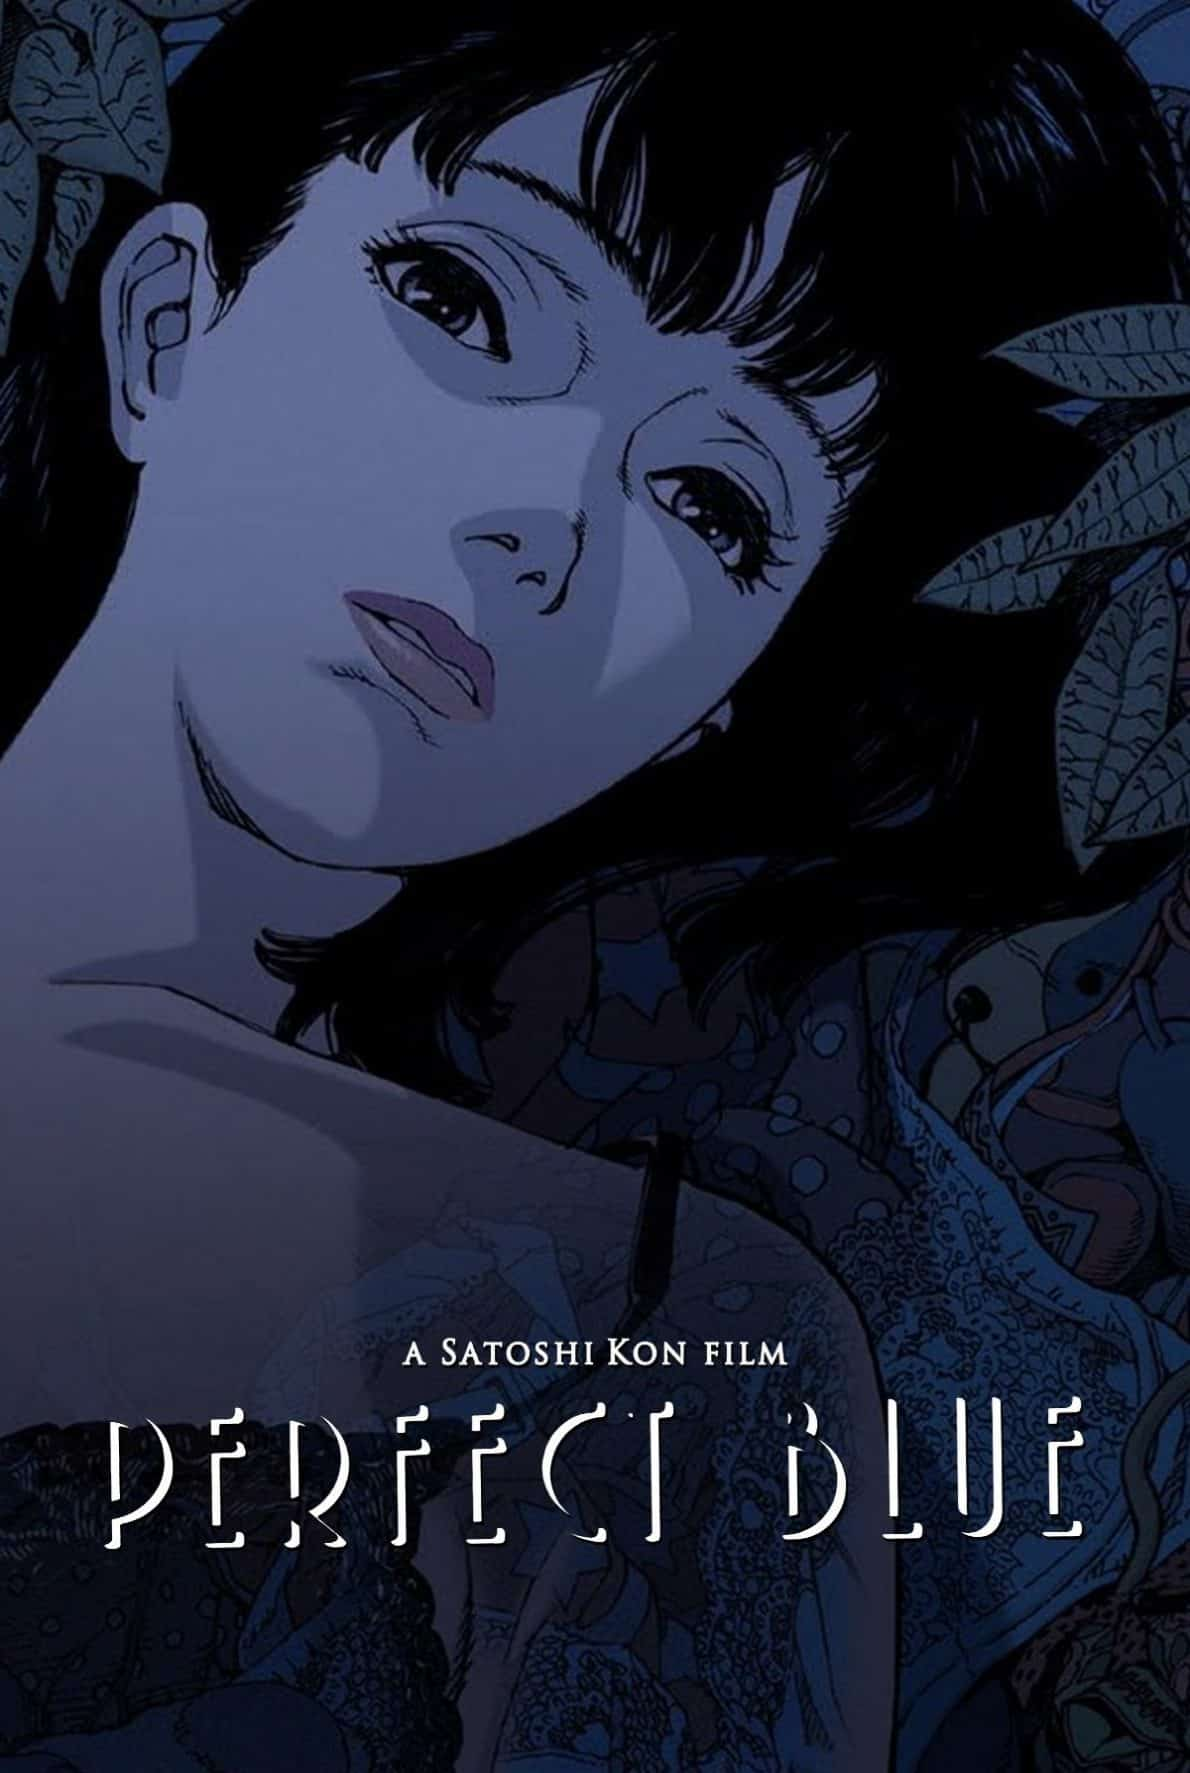 https://i2.wp.com/www.fortressofsolitude.co.za/wp-content/uploads/2016/10/Perfect-Blue-Anime-Review.jpg